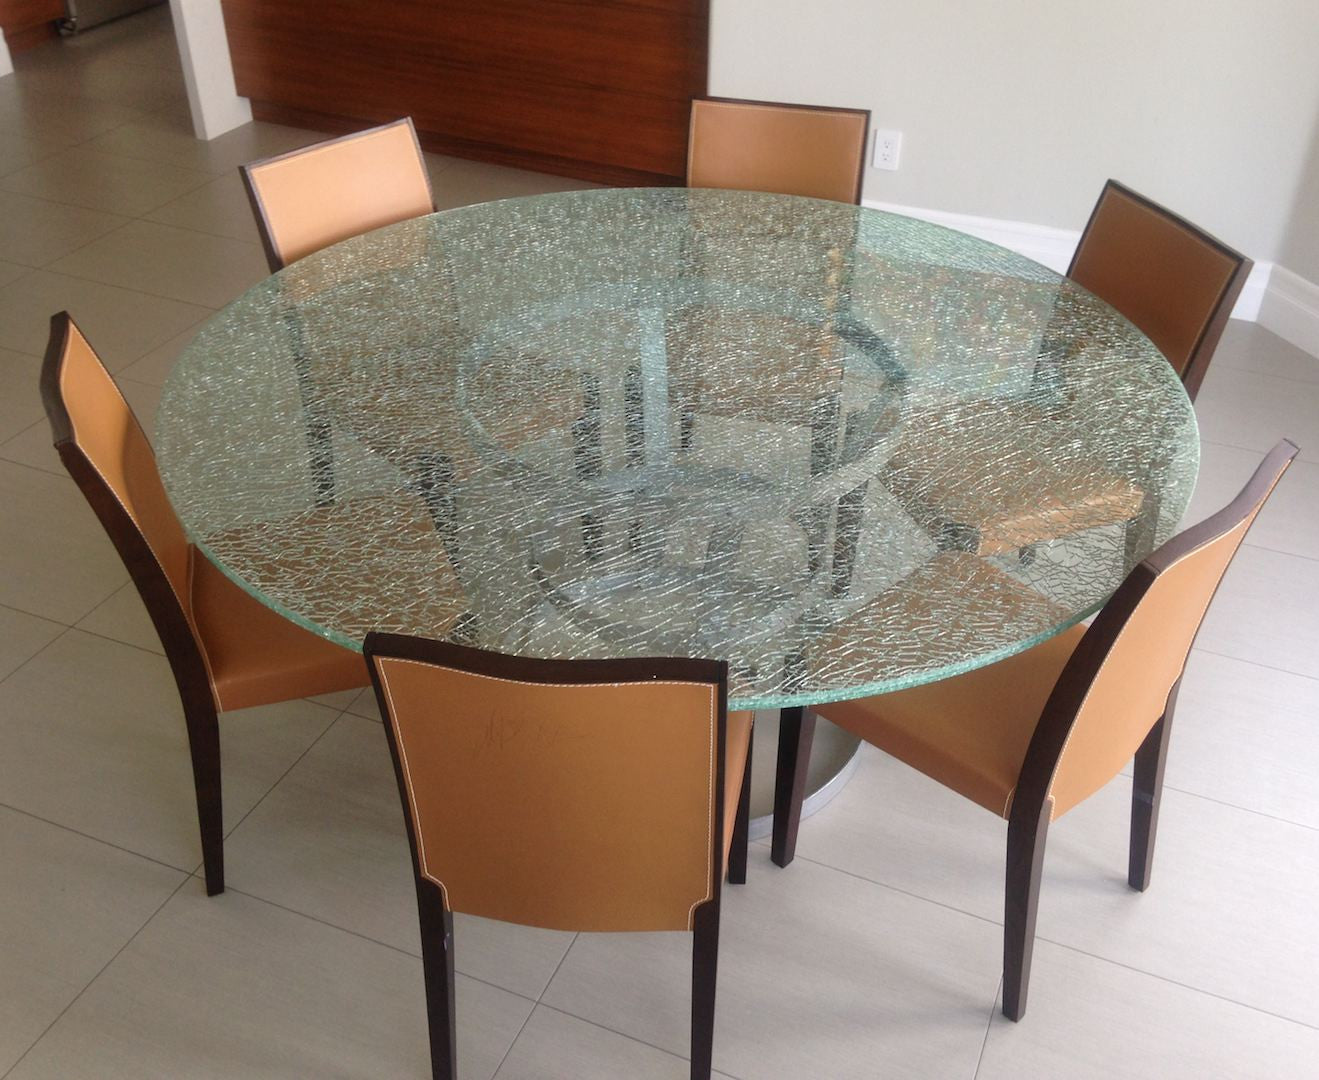 Metal Dining Room Table View Full Size 5 Pc Set Round Glass – Round Glass Top Dining Room Tables